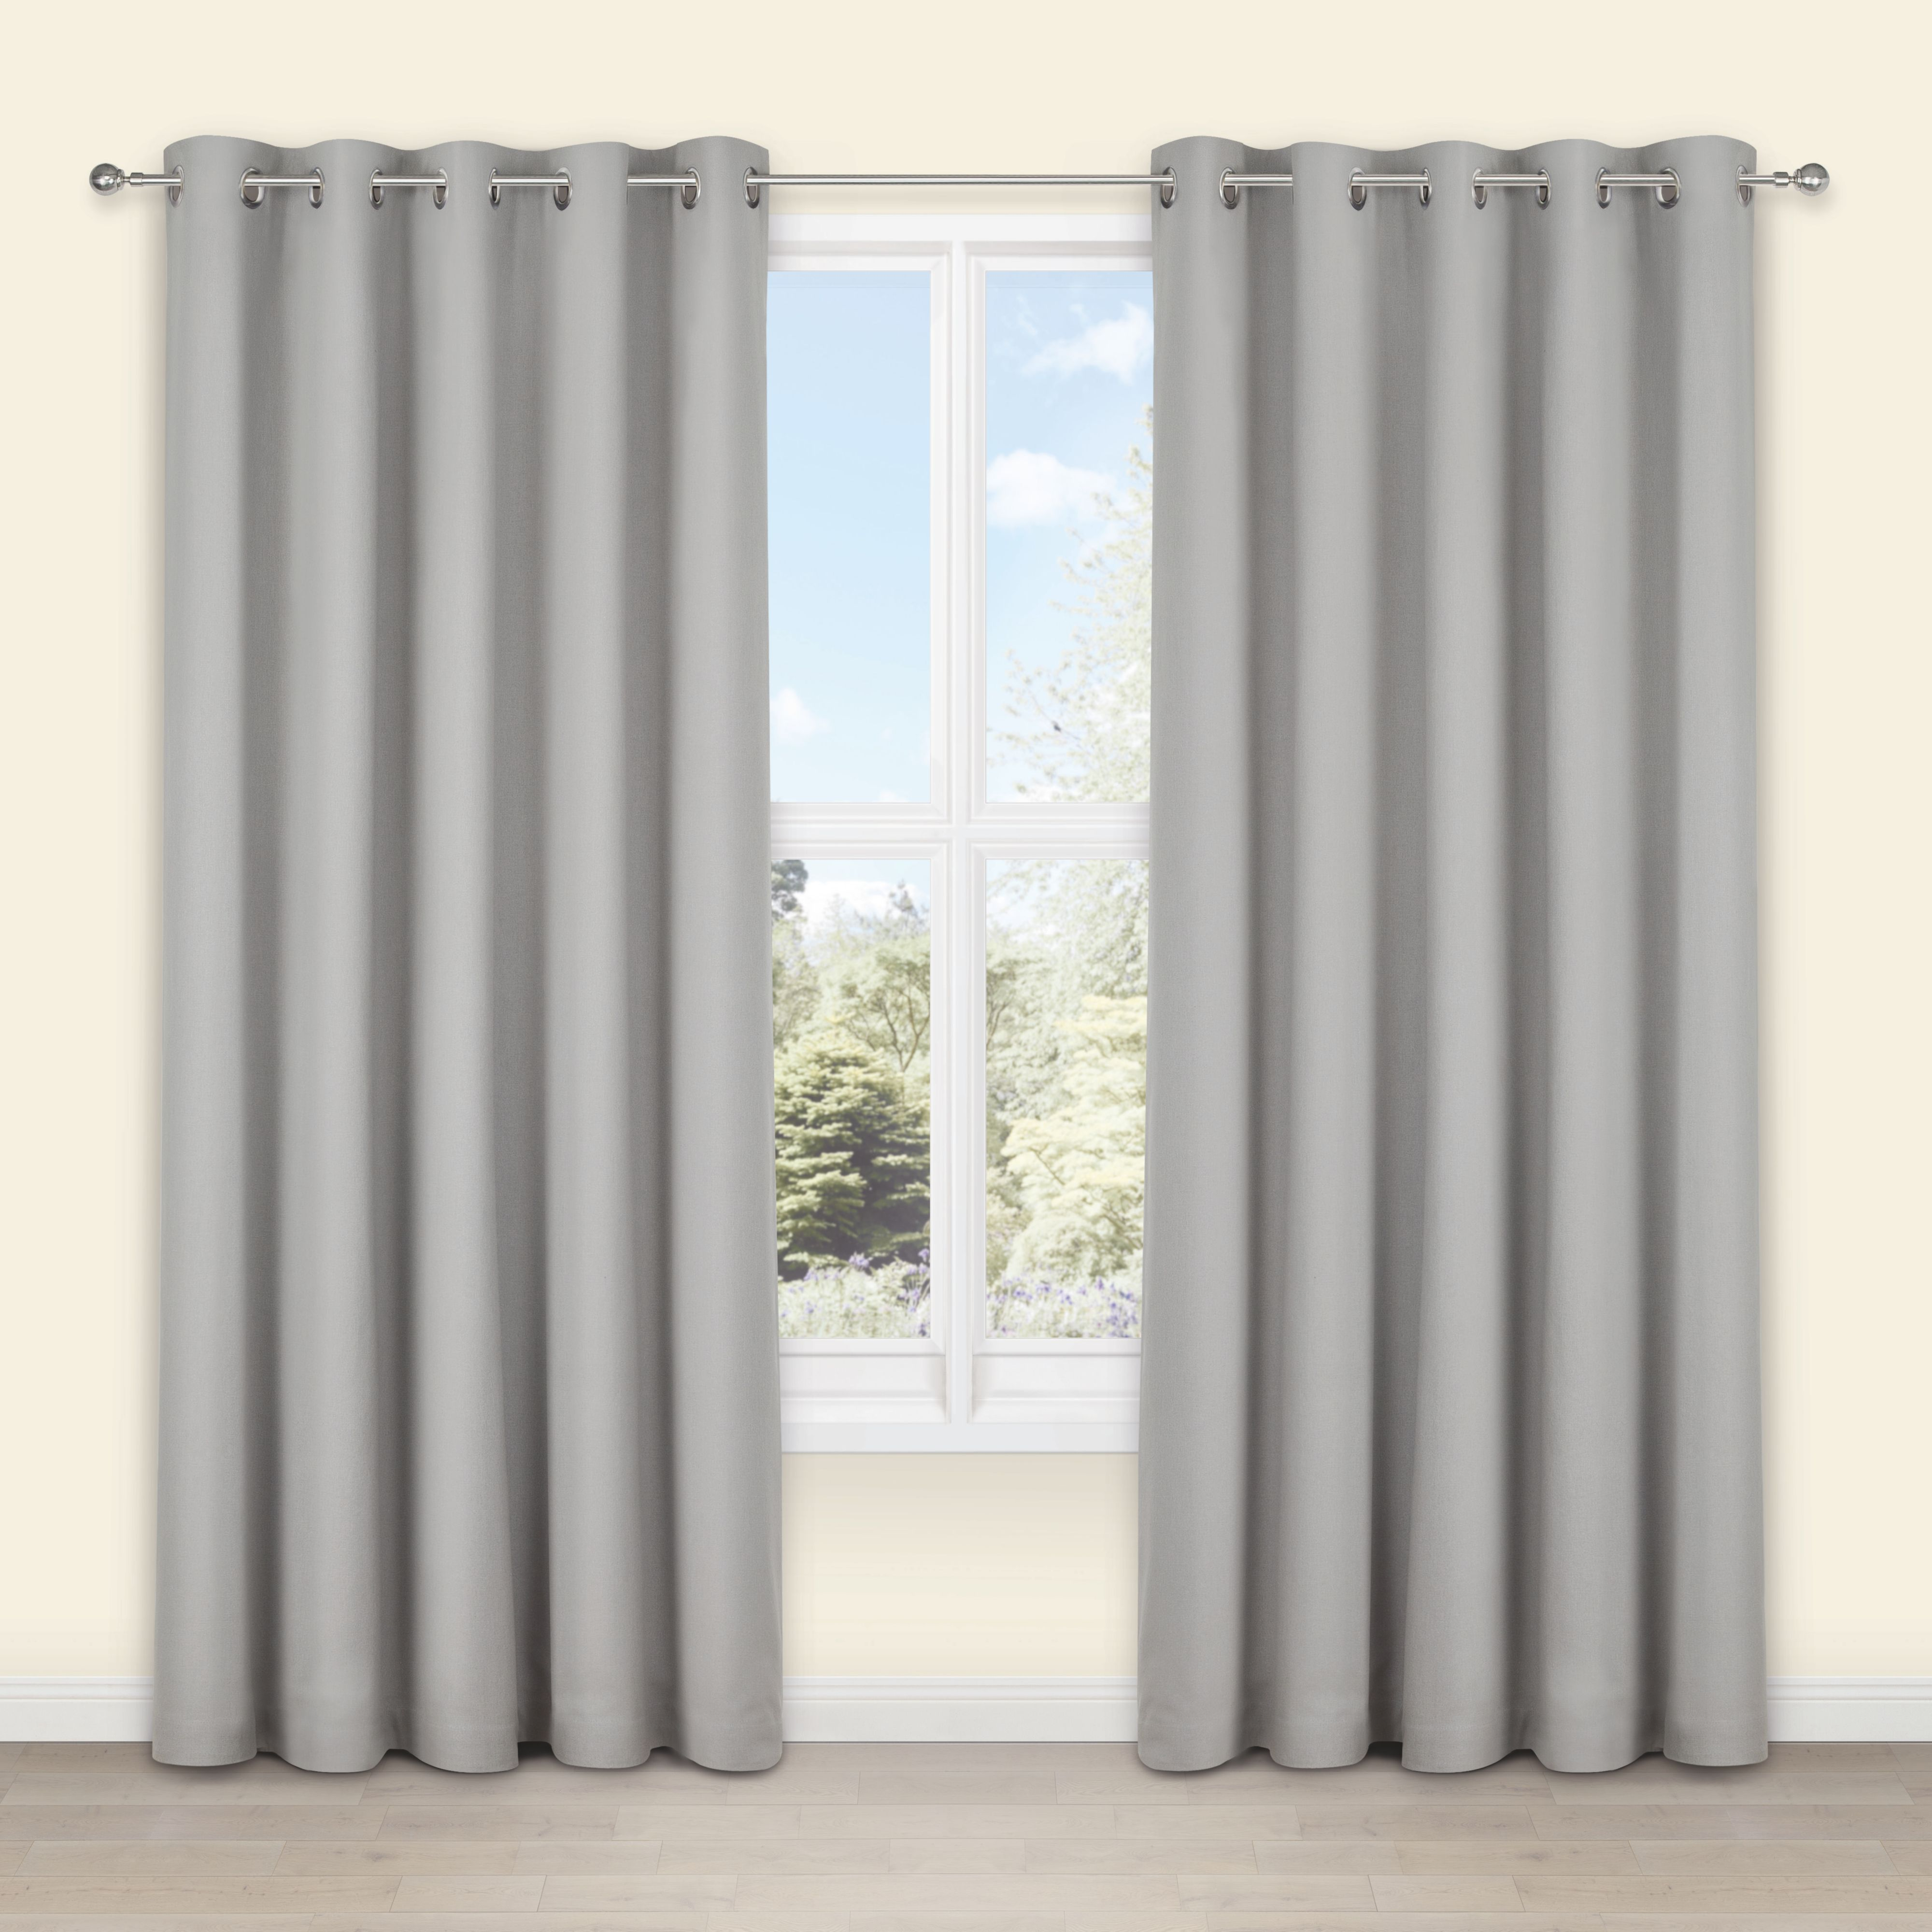 salla concrete plain woven eyelet lined curtains w 167 cm 11743 | 5052931050215 01i